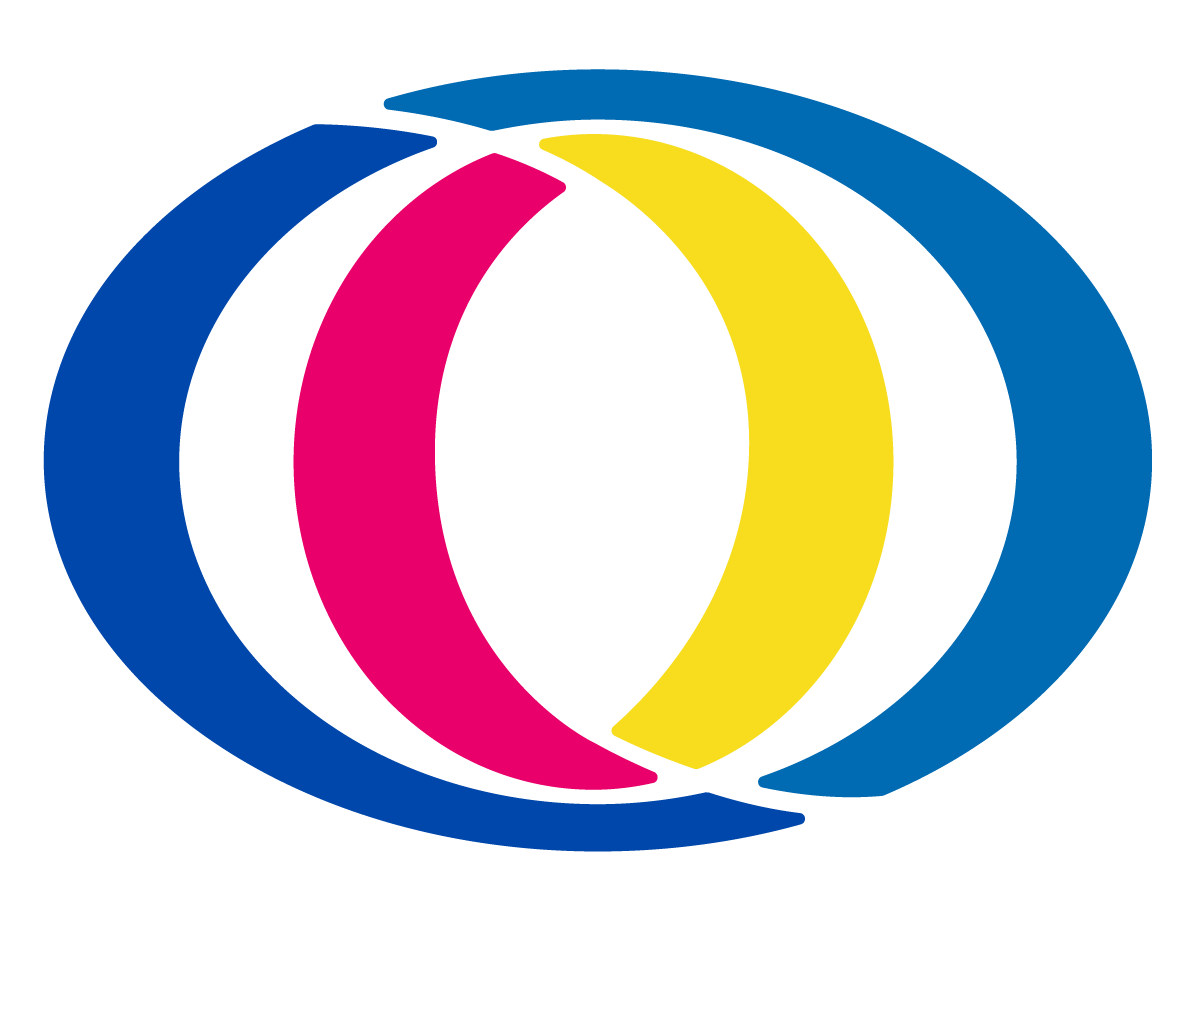 Central Office Products